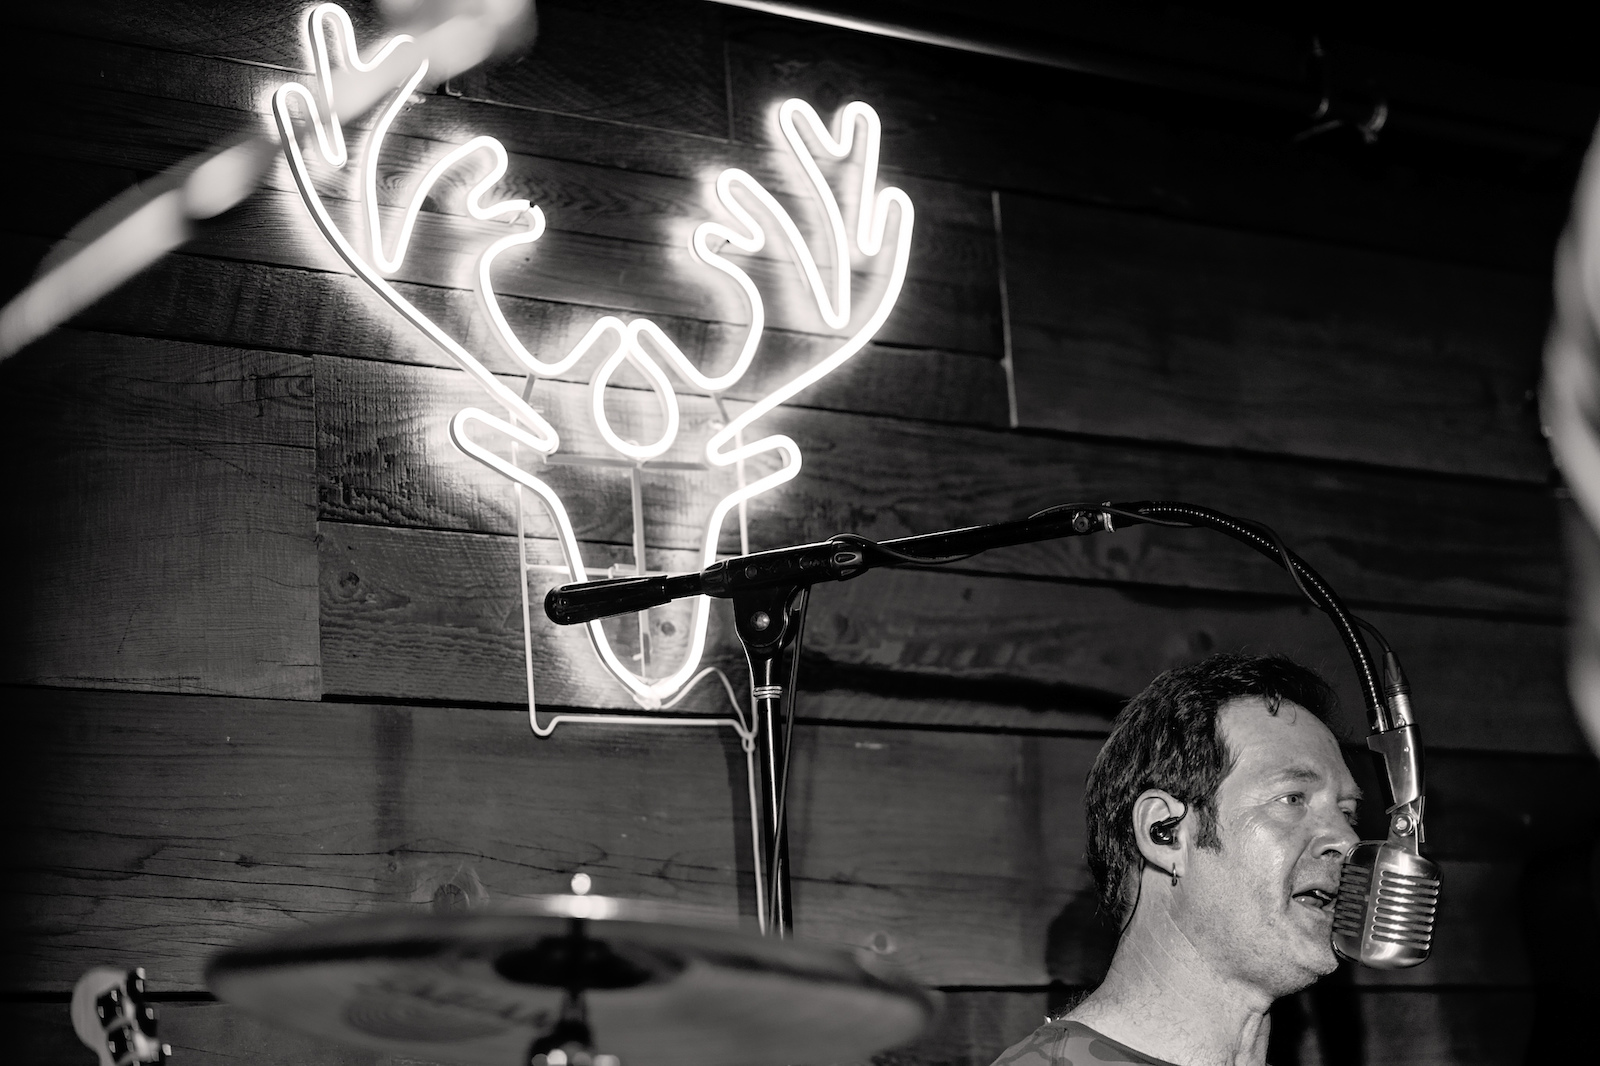 The Red Antler in black and white.